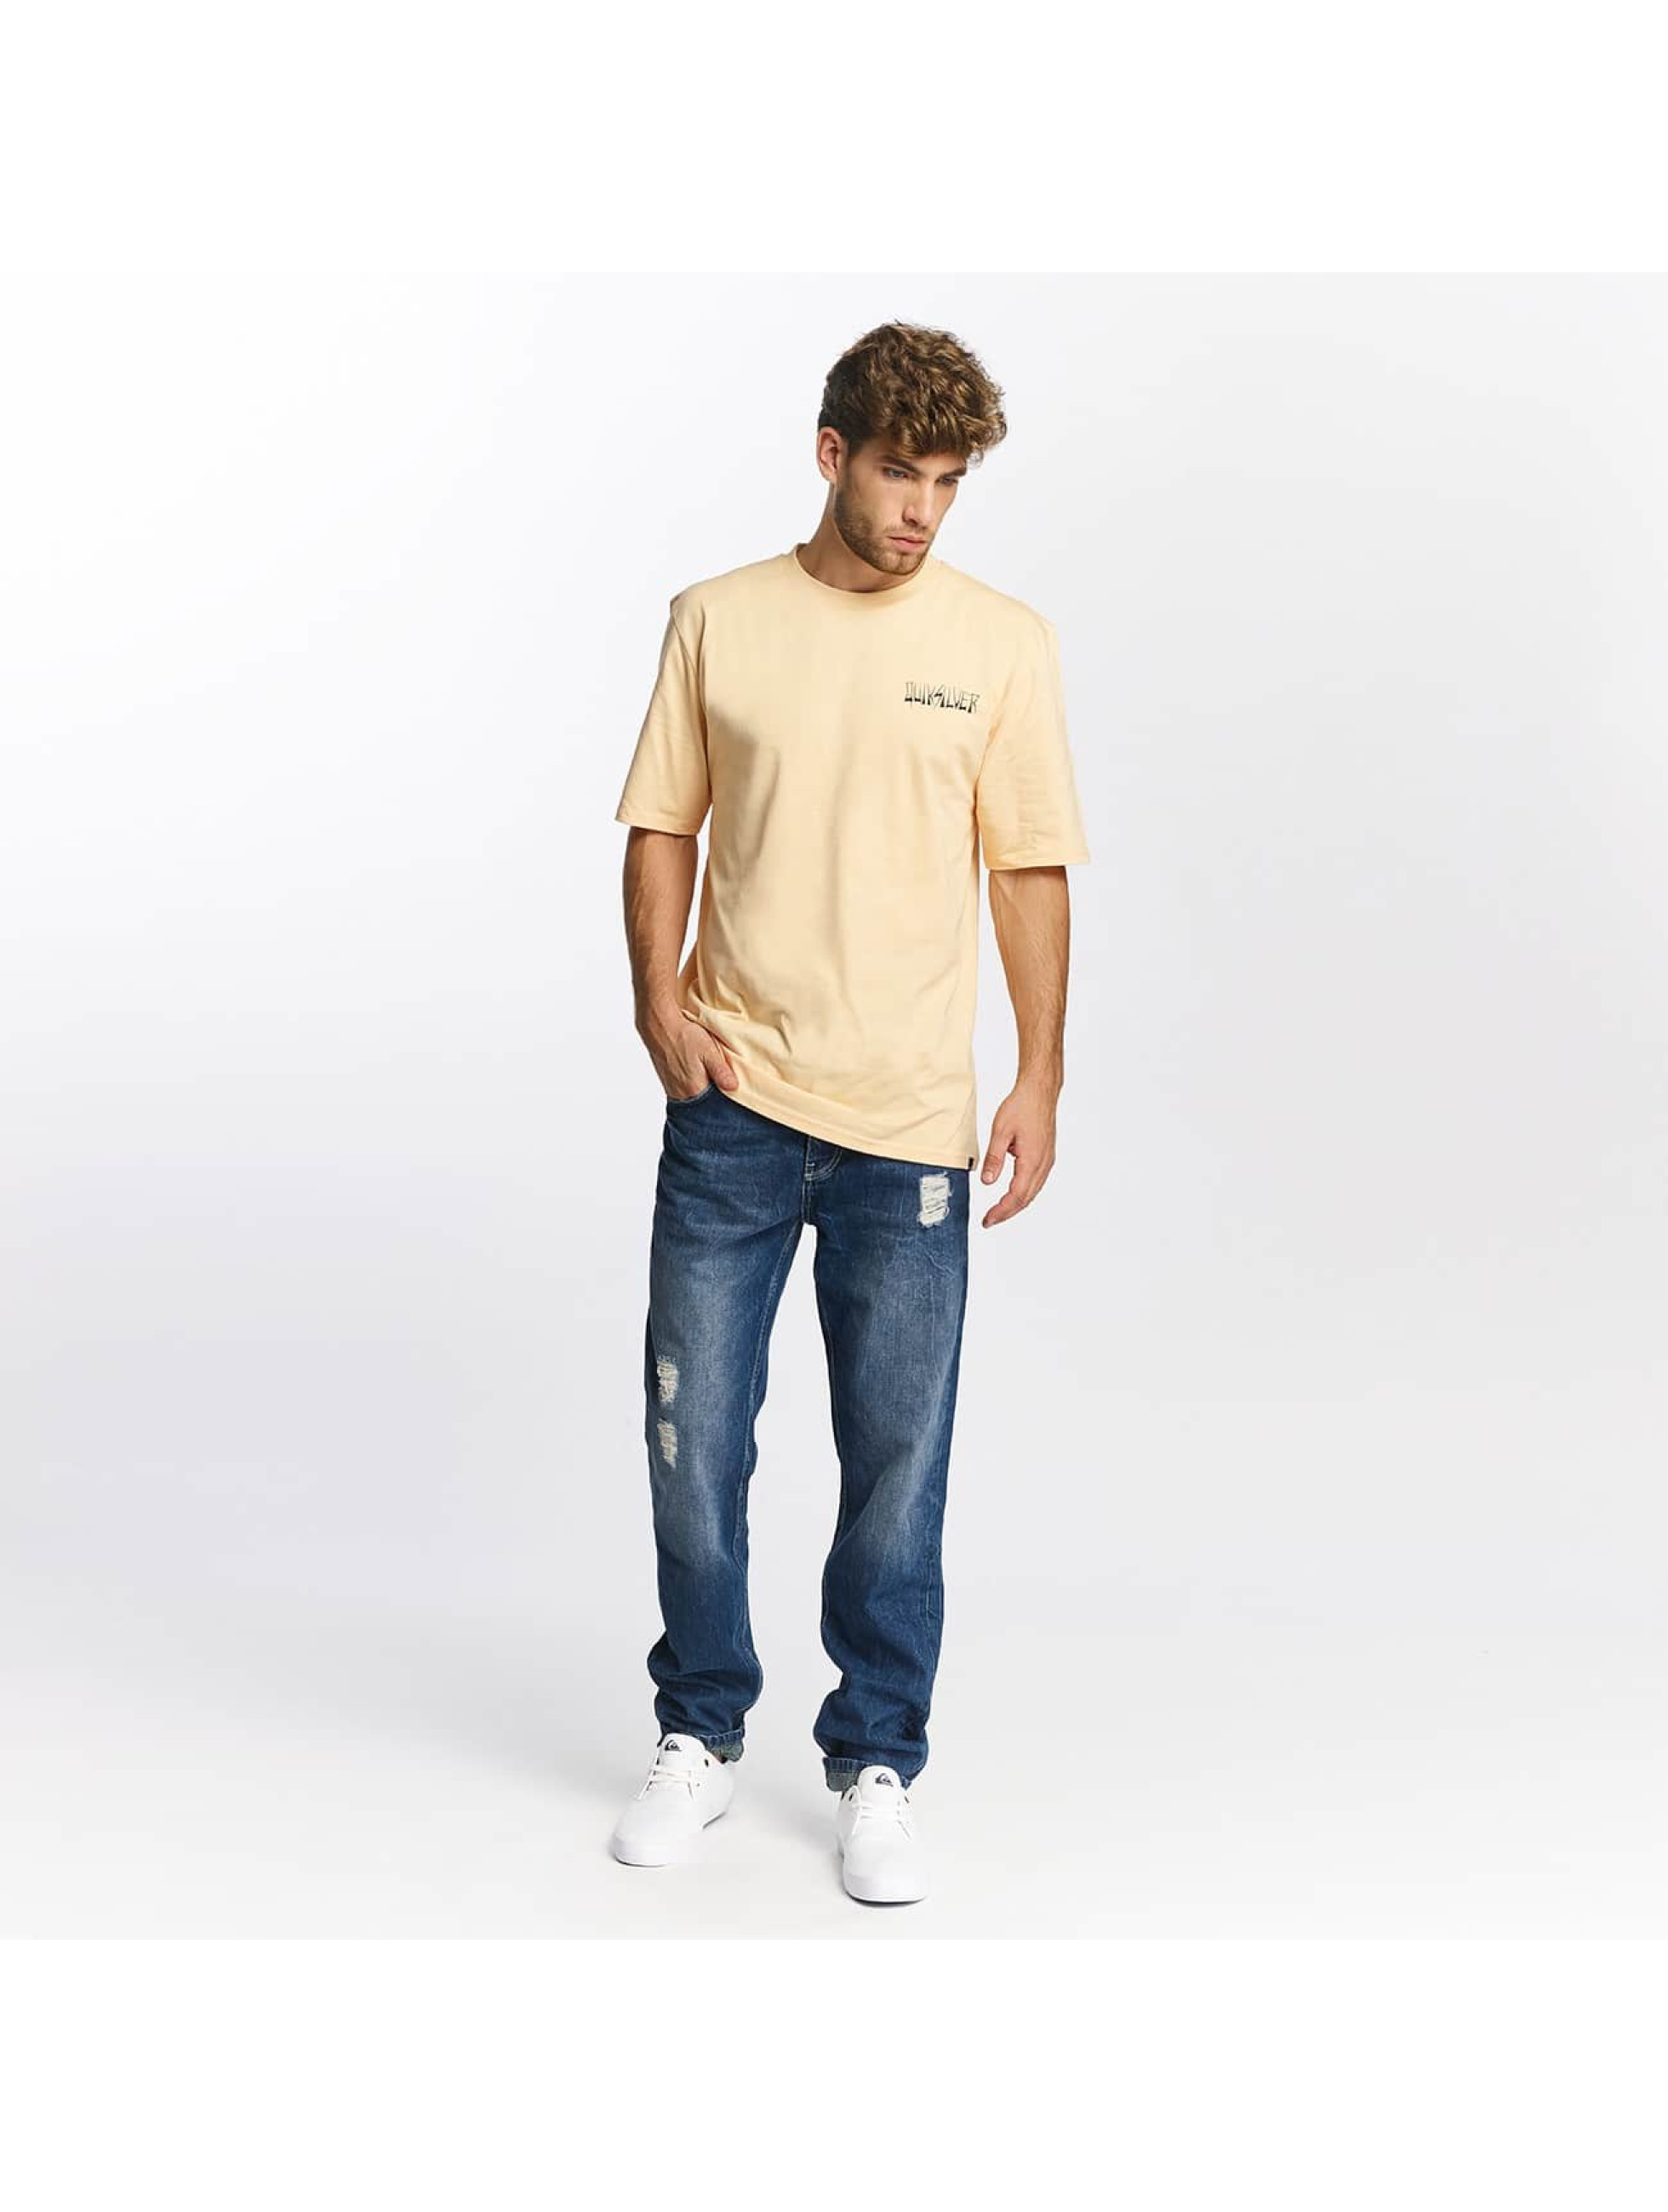 Quiksilver T-Shirty Neon Tendencies pomaranczowy